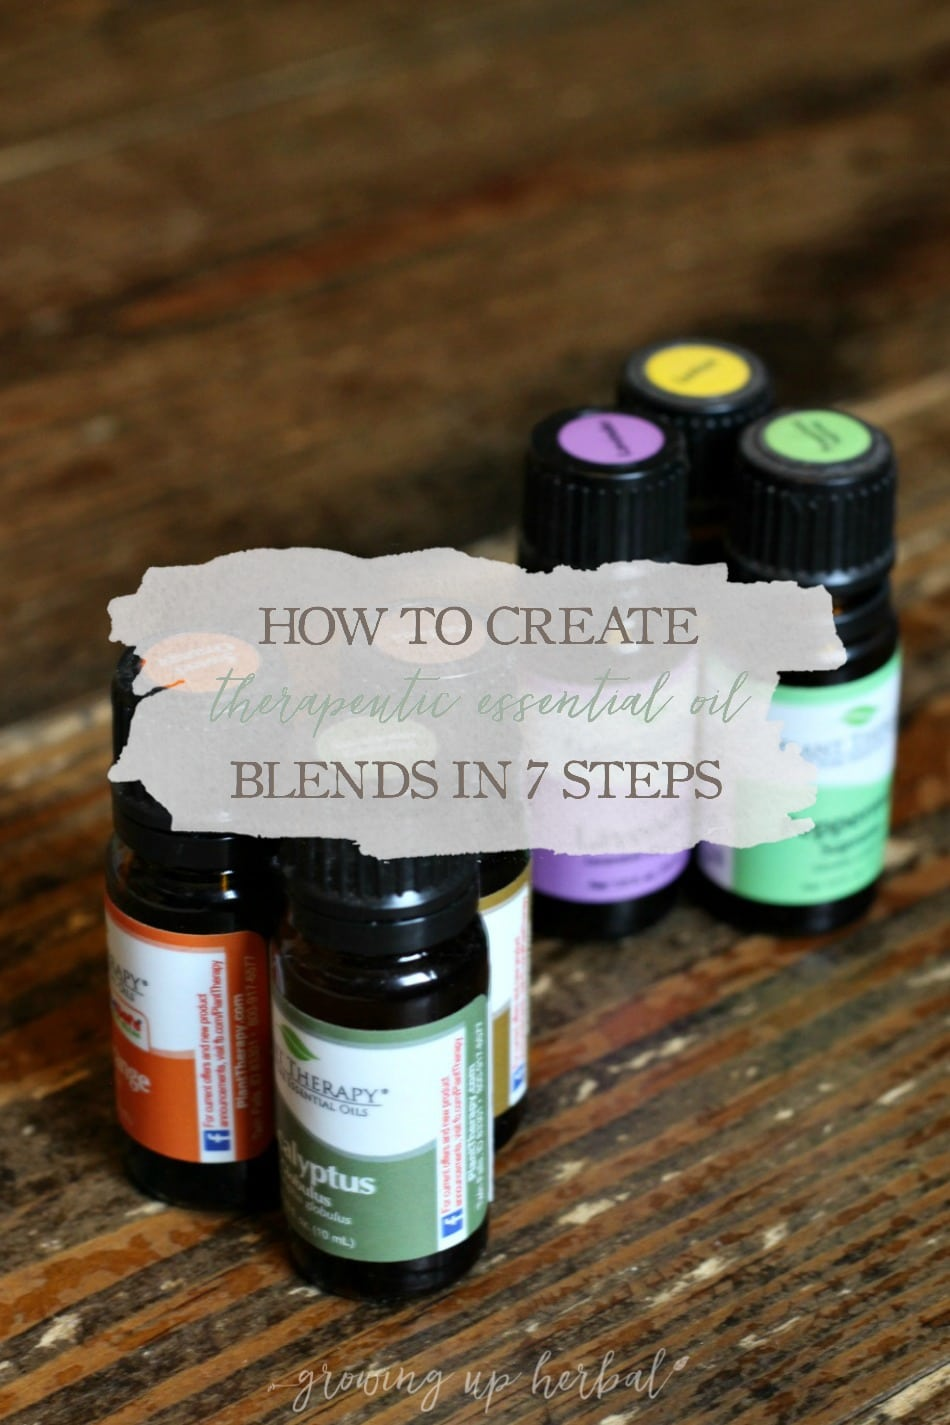 How To Create Therapeutic Essential Oil Blends in 7 Steps | Growing Up Herbal | Ever wanted to know how to take individual essential oils and create your own therapeutic essential oil blends for everyday ailments? Here's how in 7 steps!